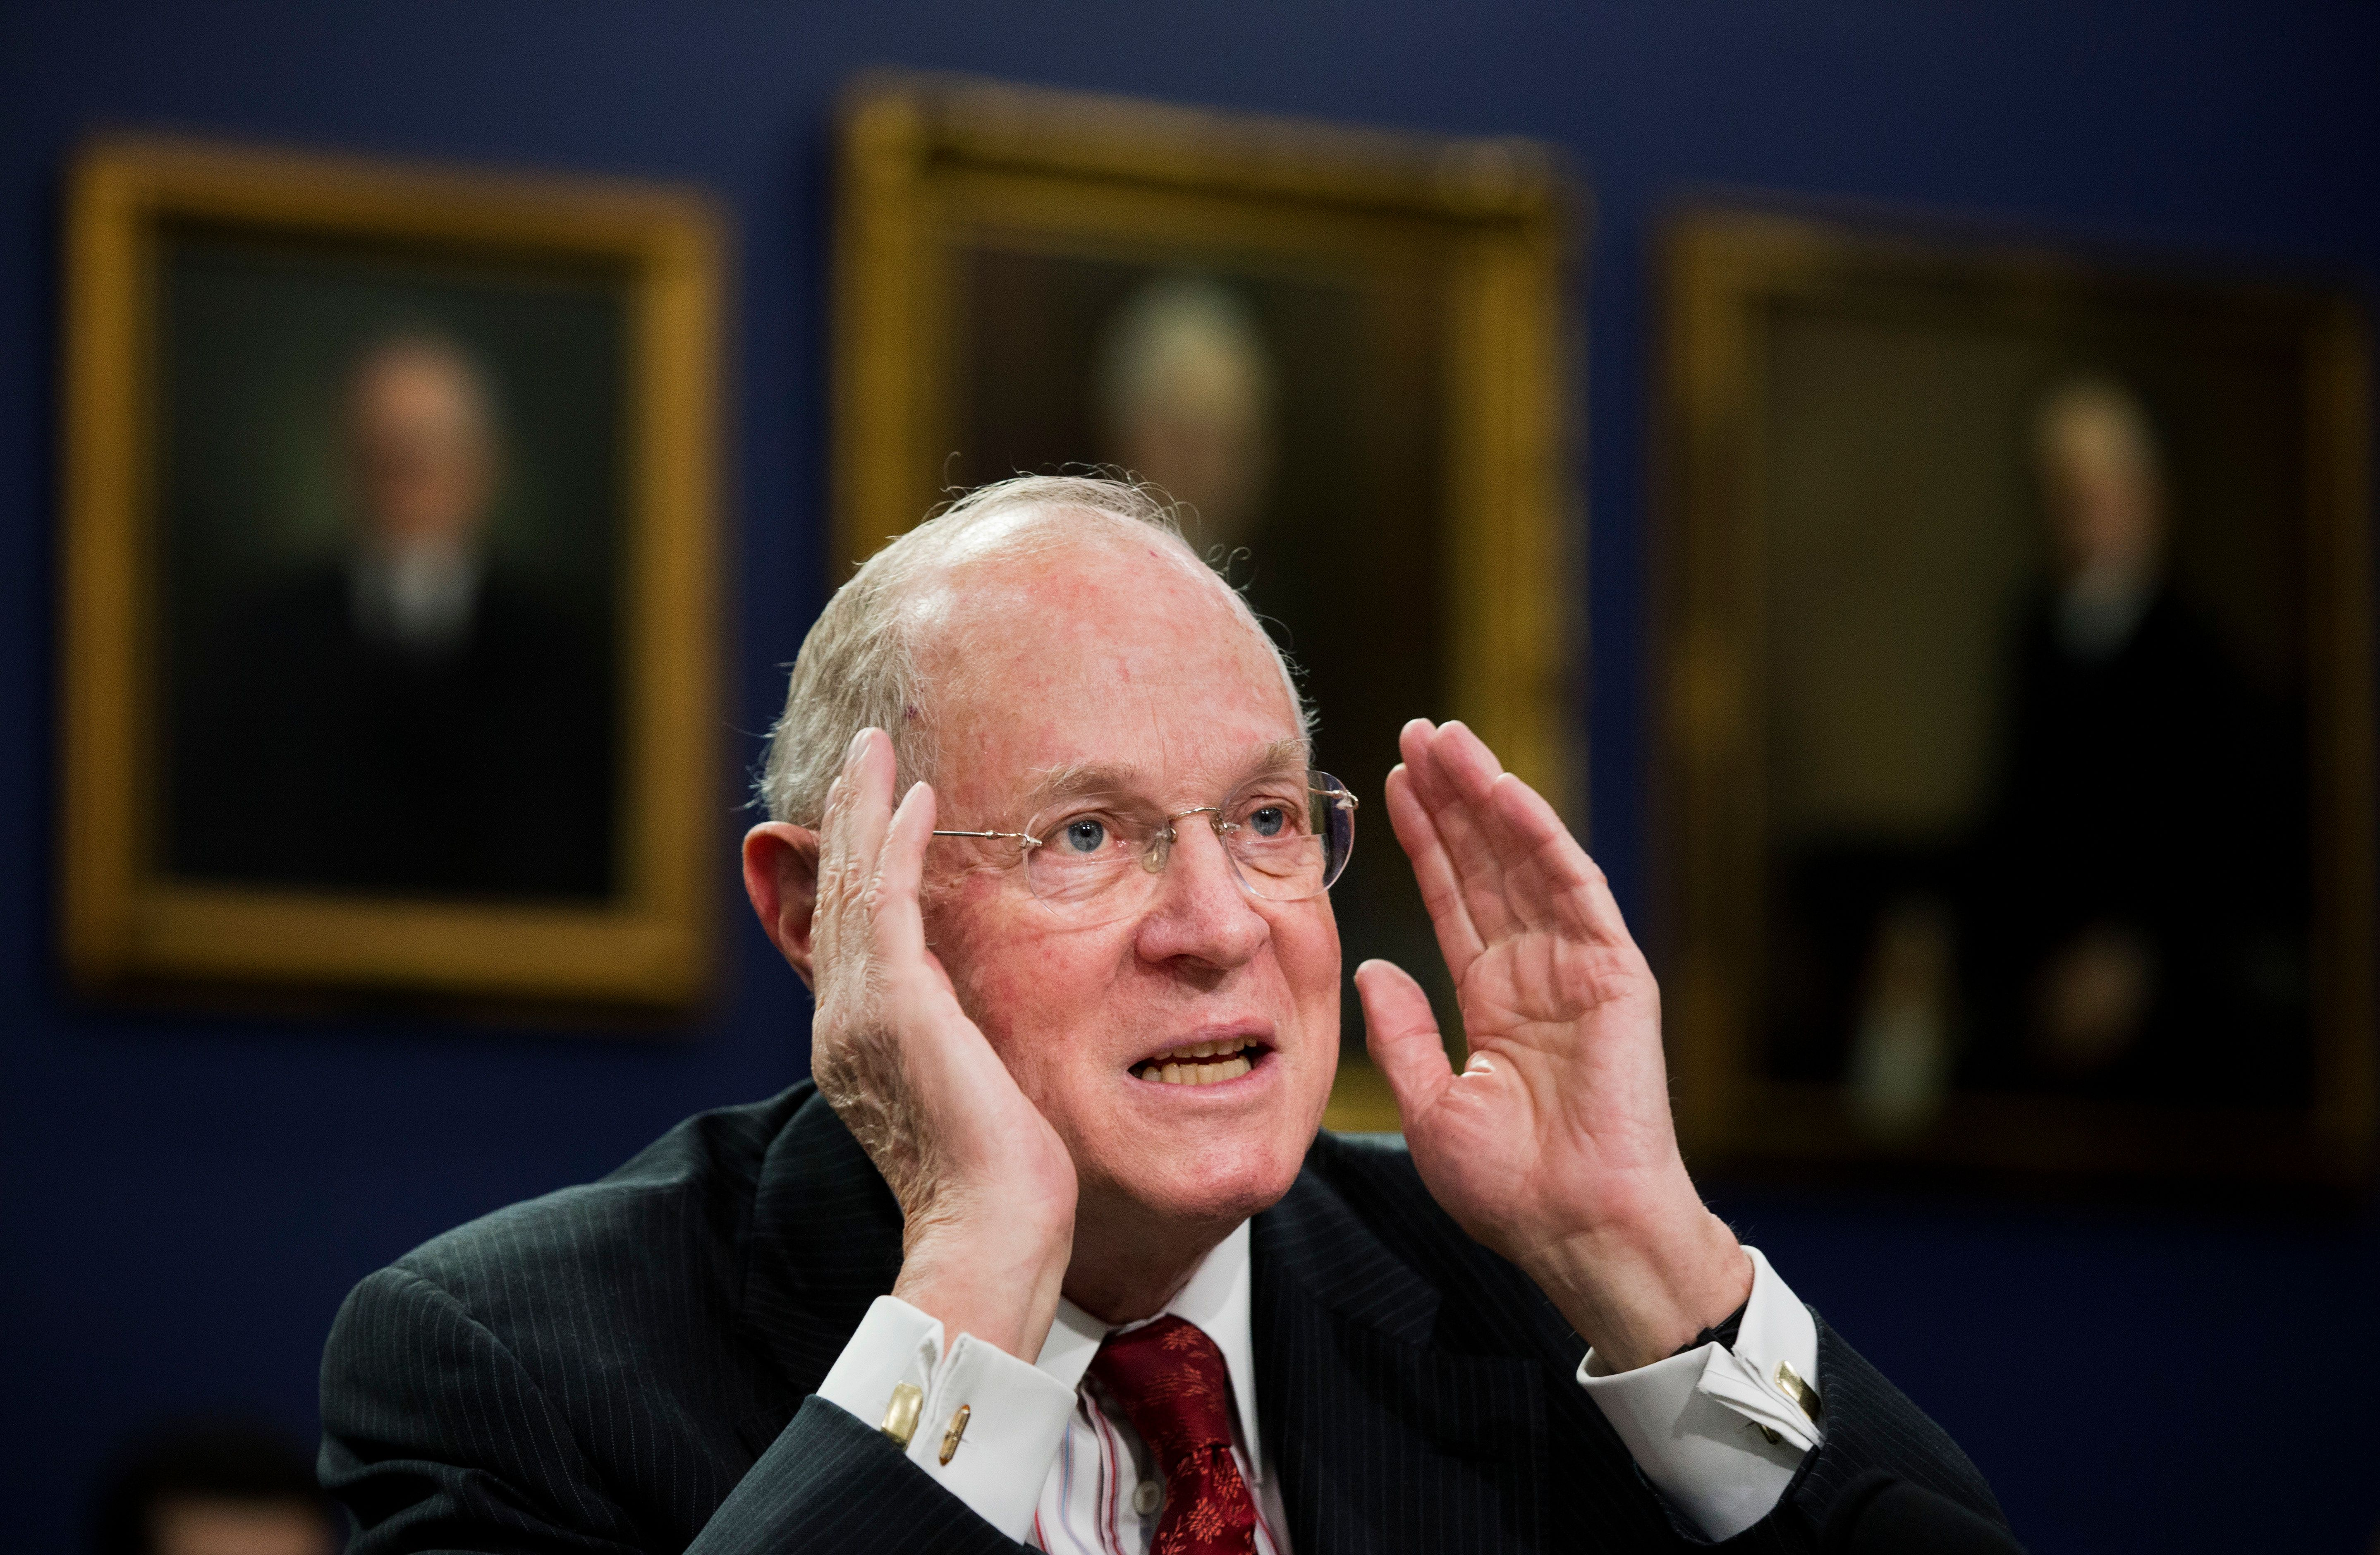 Supreme Court Associate Justices Anthony Kennedy testifies on Capitol Hill in Washington, Monday, March 23, 2015, before a House Committee on Appropriations subcommittee on Financial Services hearing to review the Supreme Court's fiscal 2016 budget request. (AP Photo/Manuel Balce Ceneta)